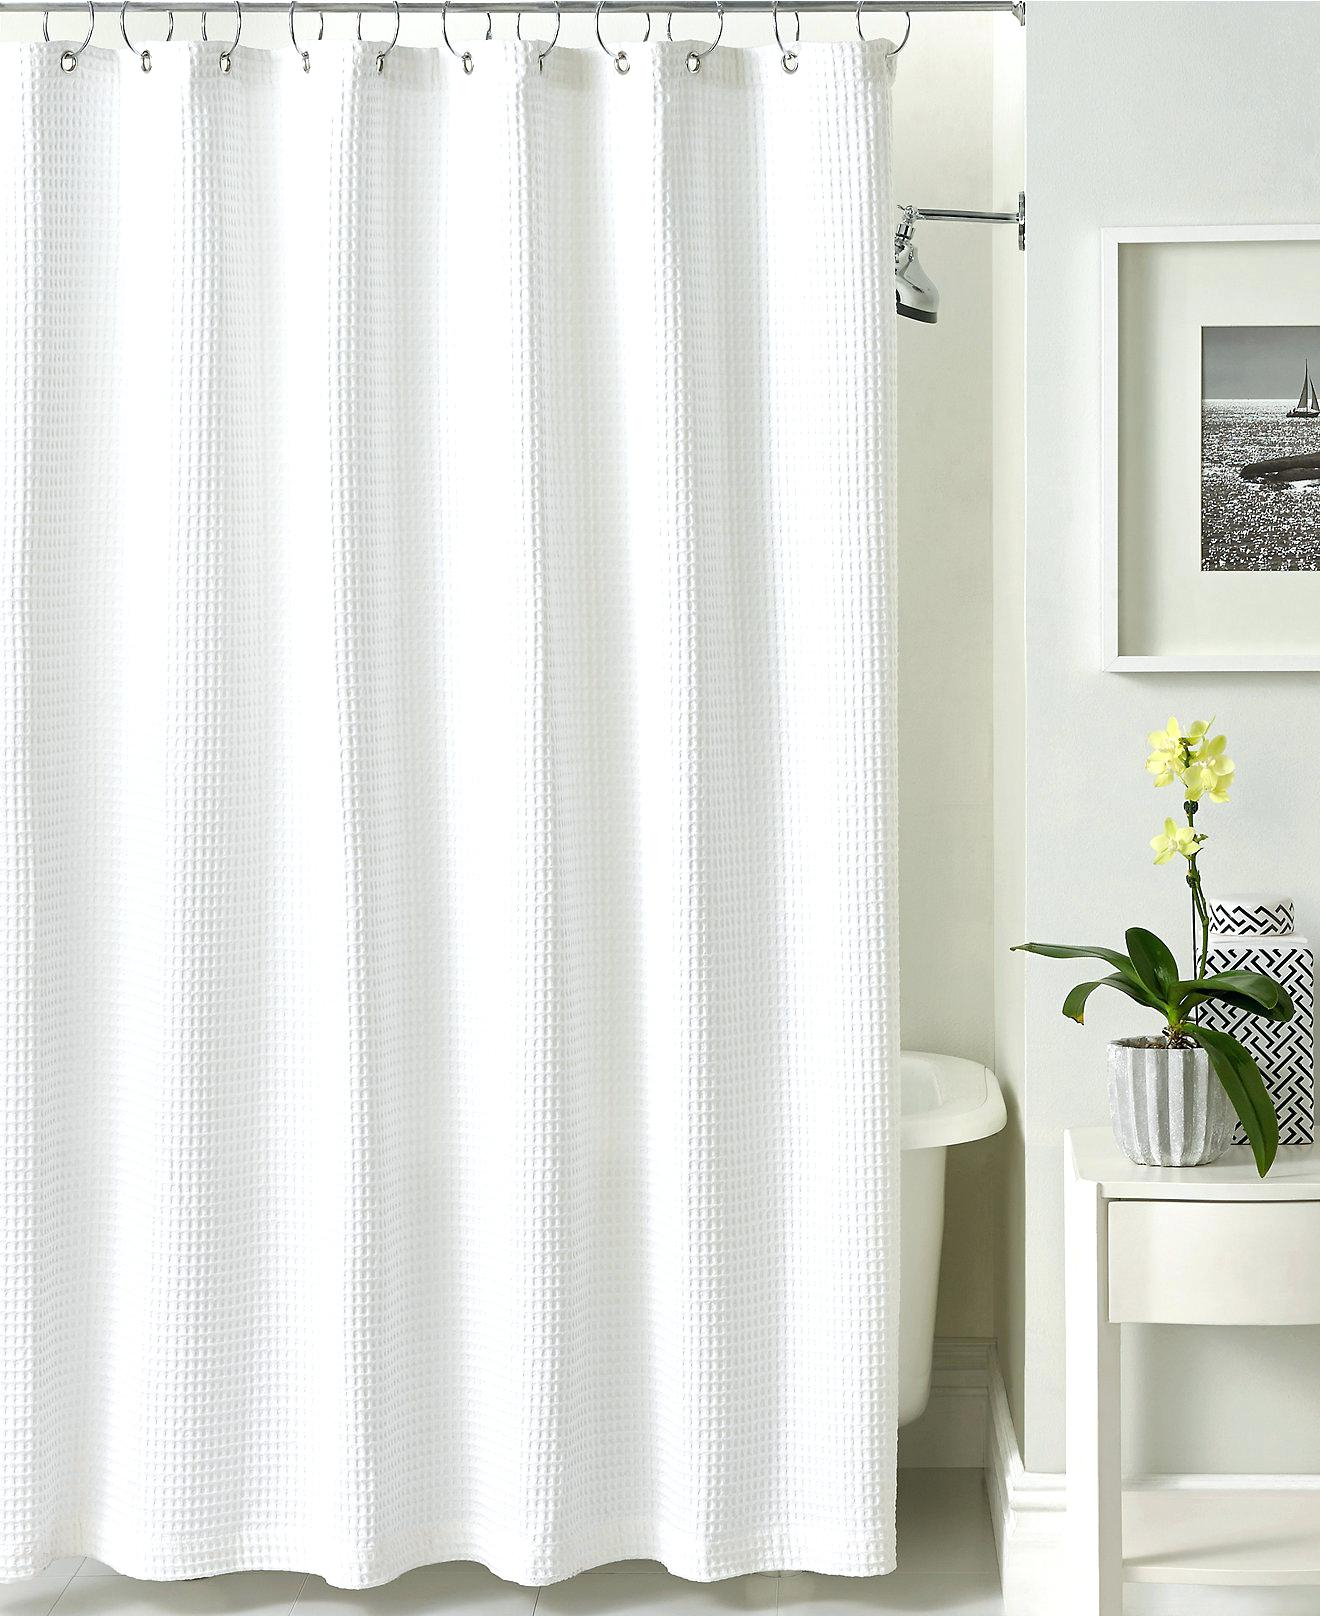 Antimicrobial Shower Curtain Liner